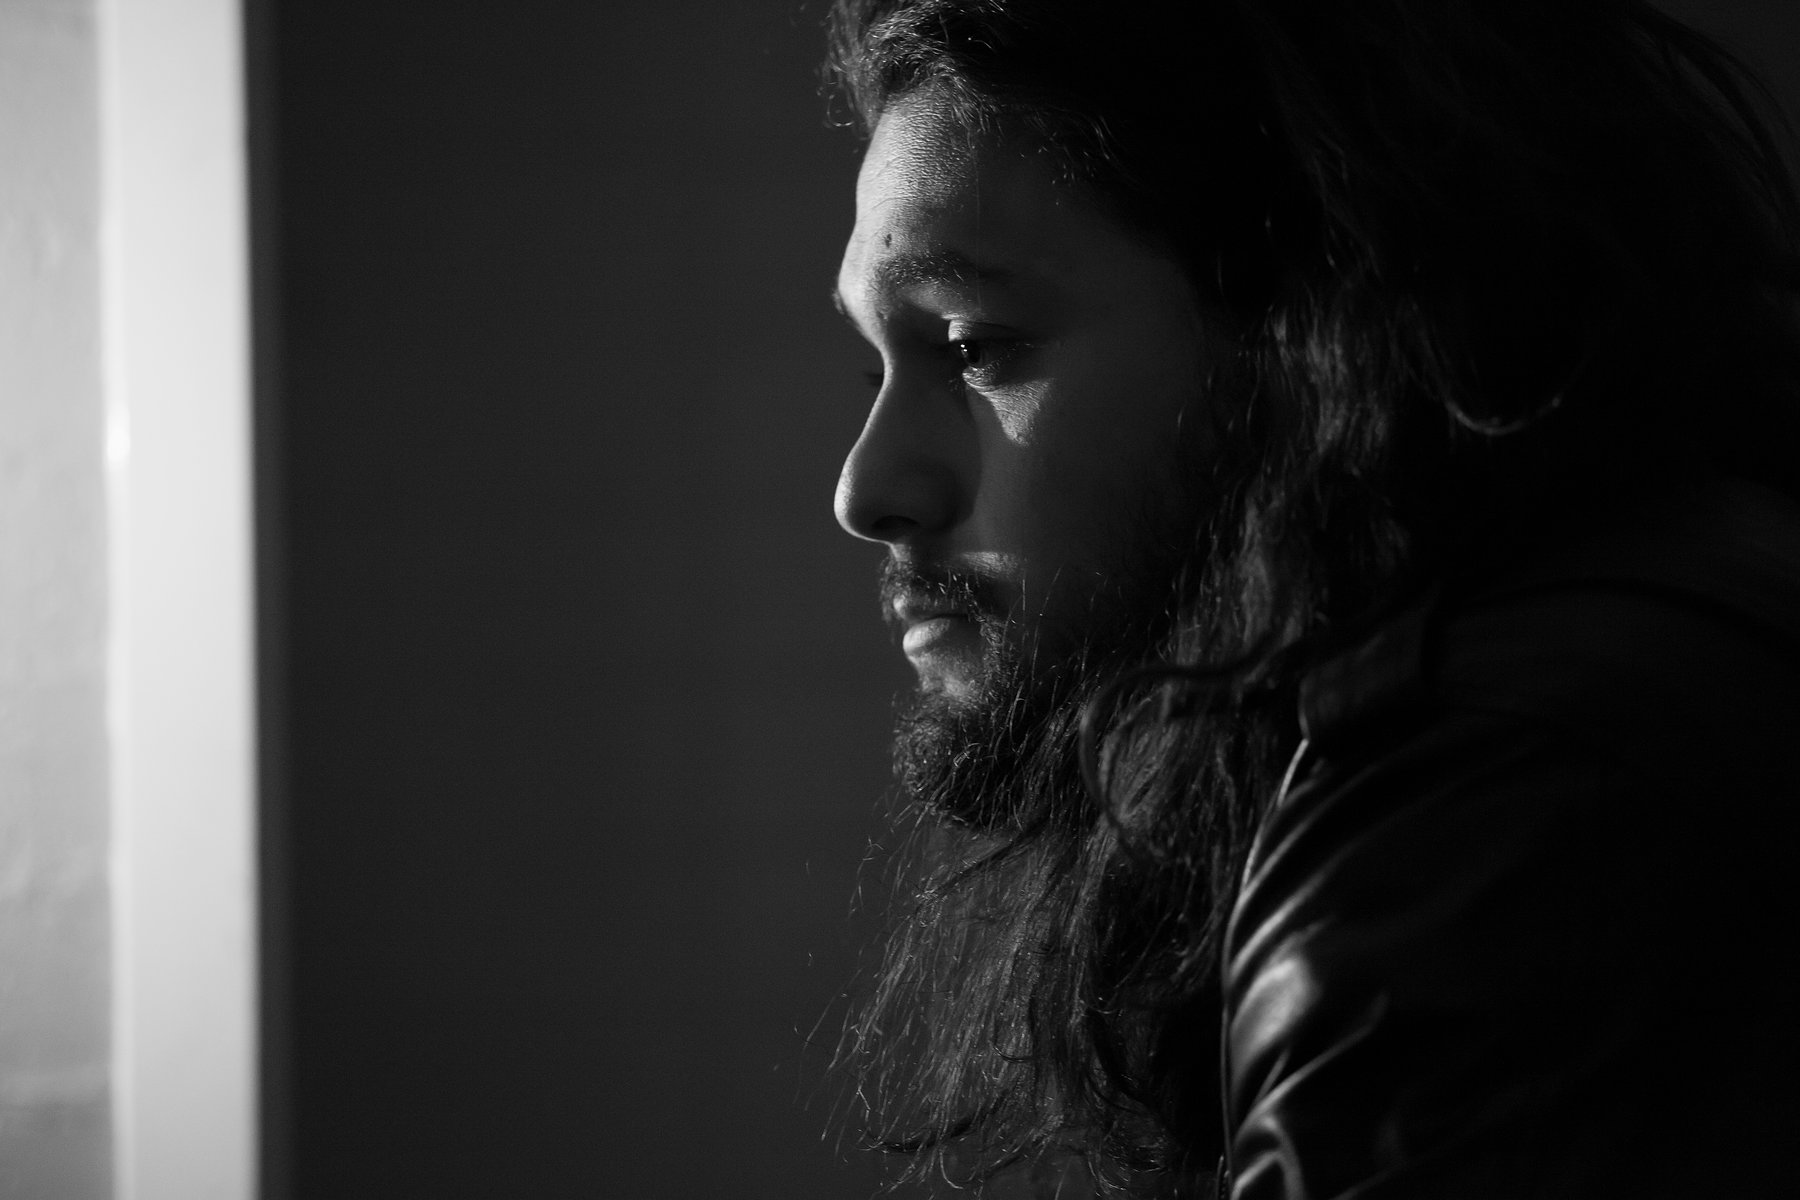 David Le'aupepe of Gang of Youths